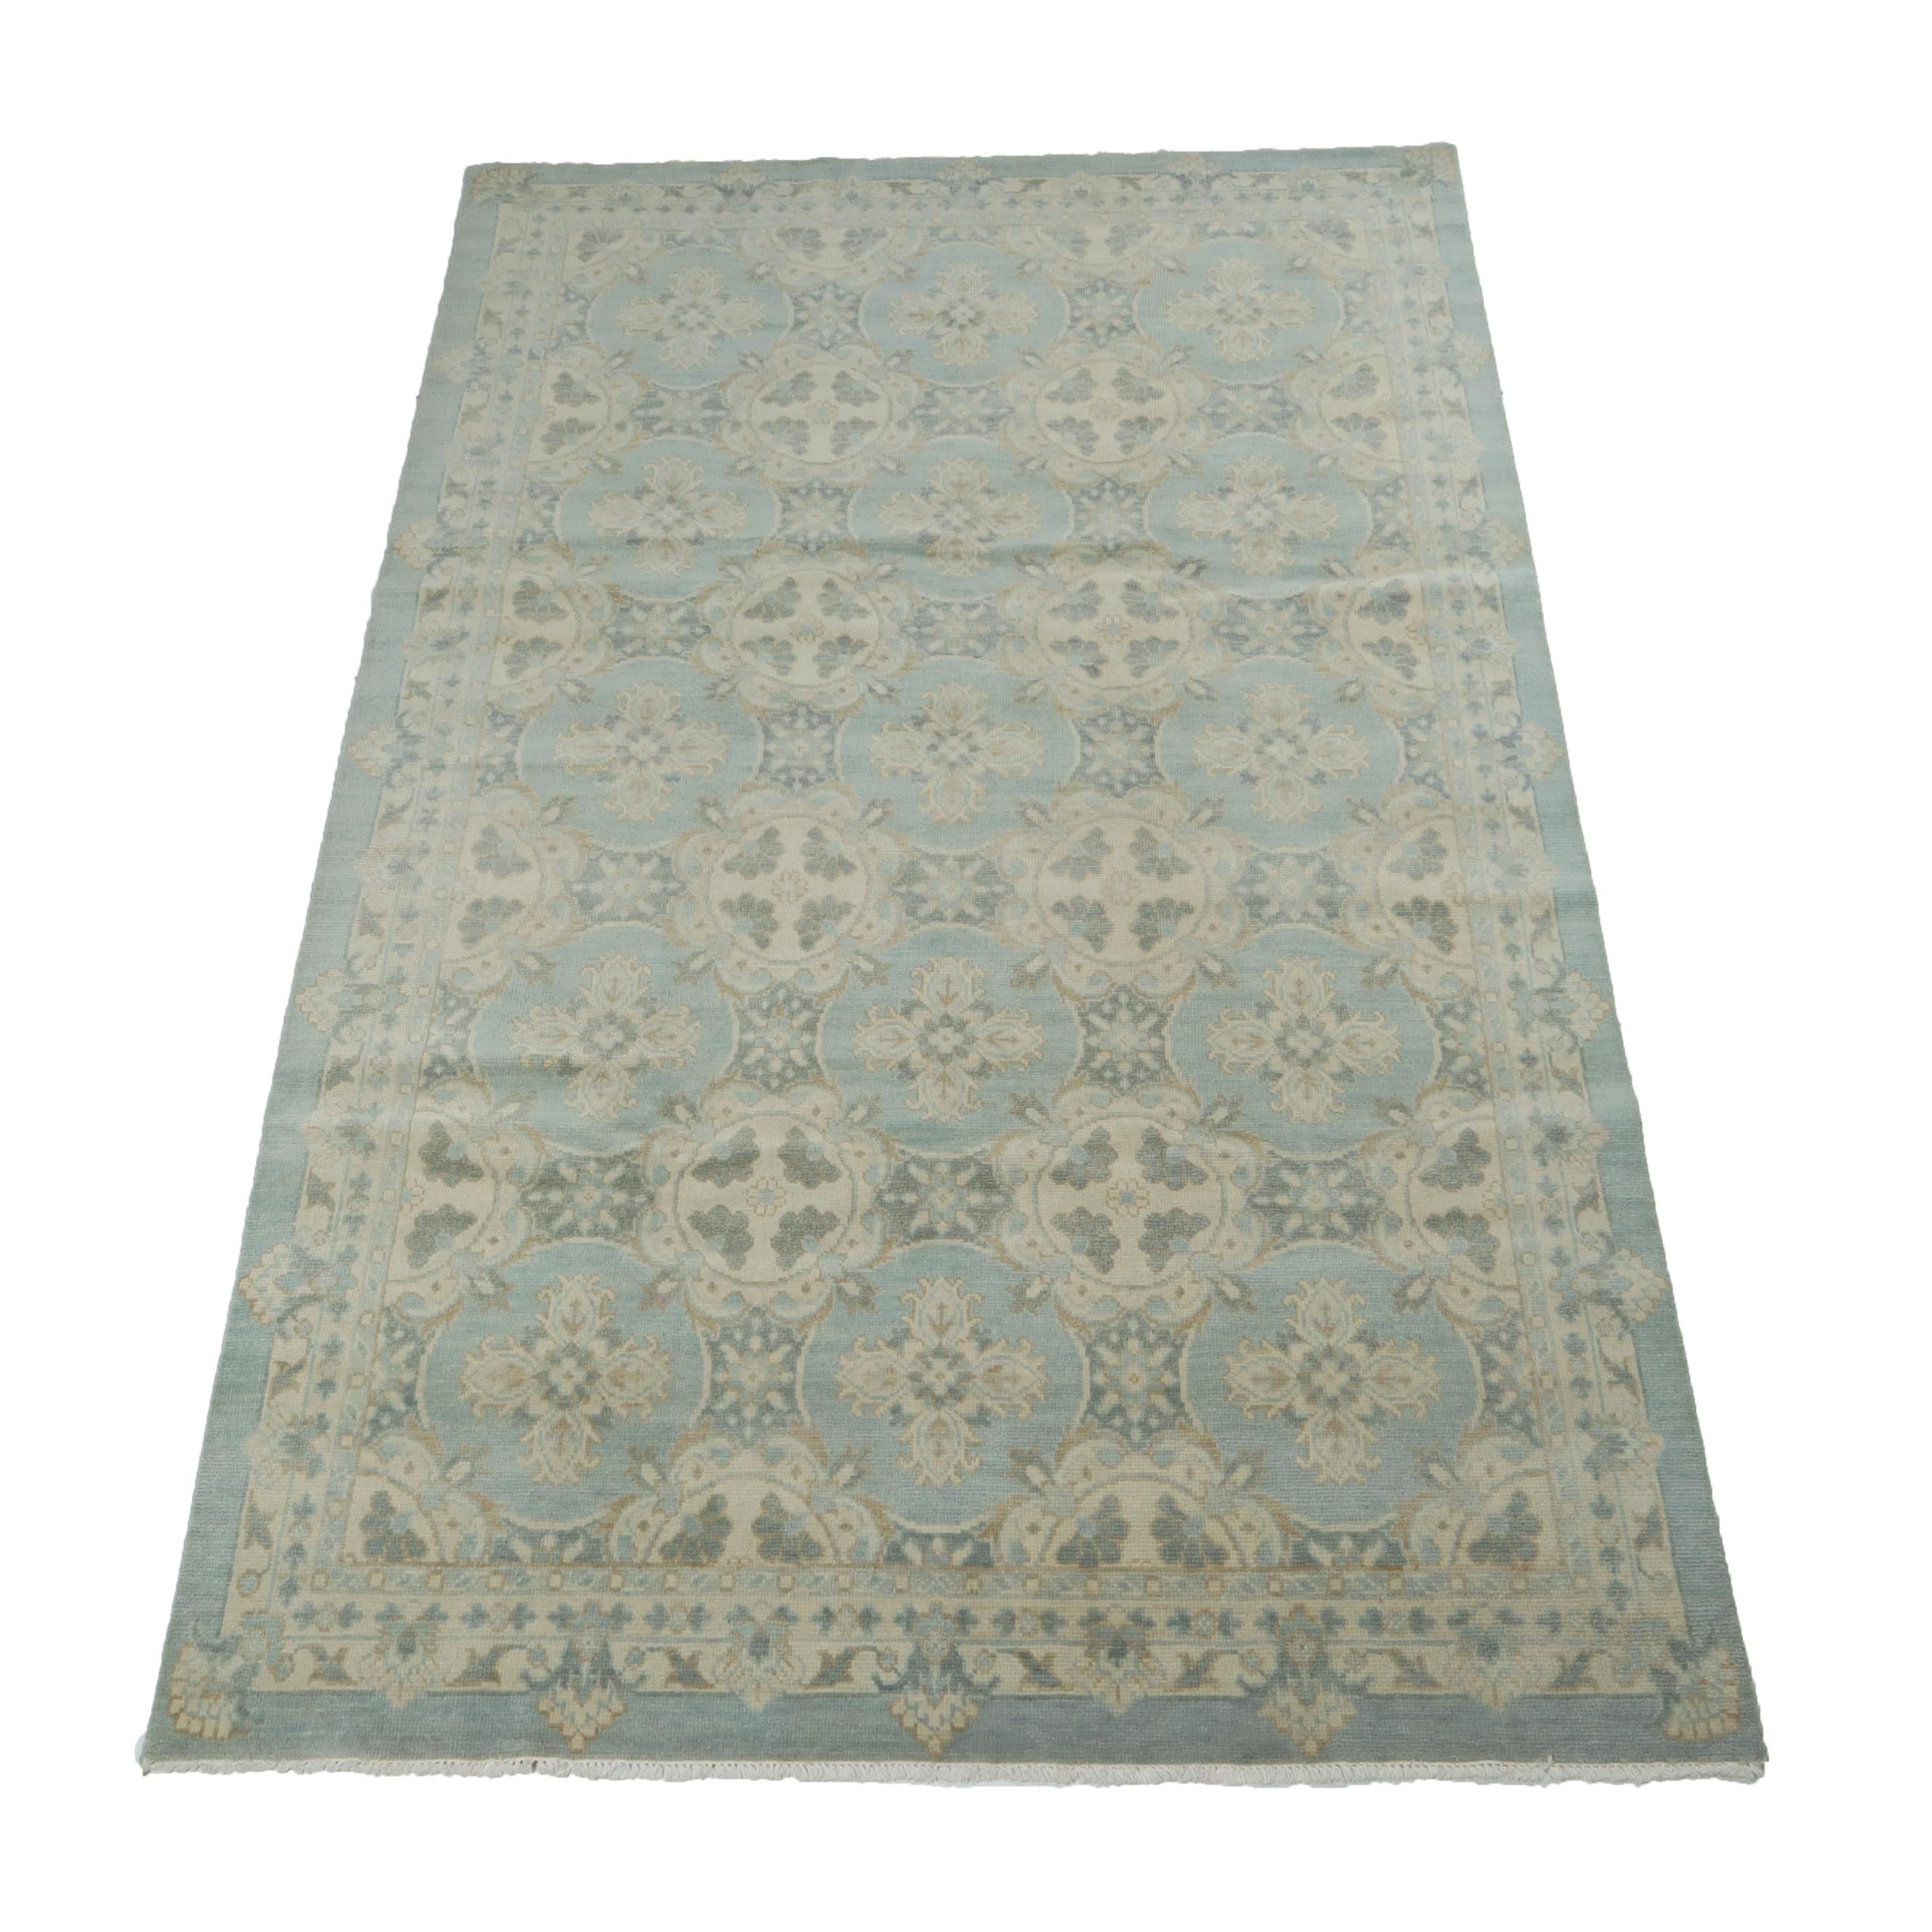 5.11' x 9.4' Hand-Knotted Indo-Turkish Oushak Wool Rug